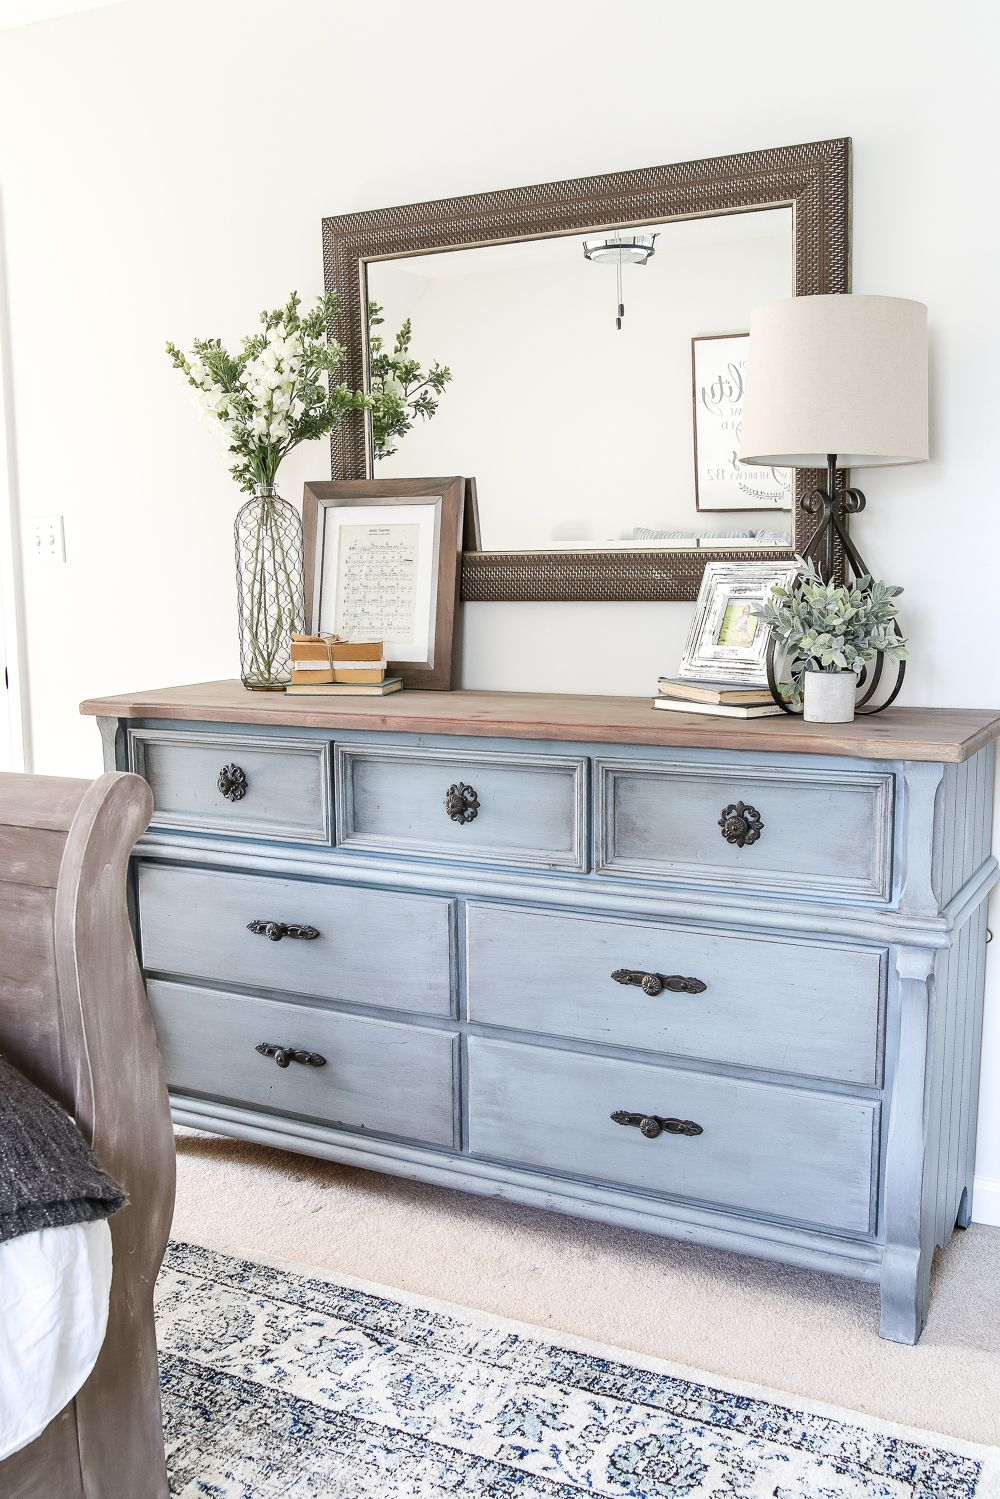 Blue Cottage Style Guest Bedroom Makeover Reveal is part of Guest bedroom makeover - A dark and dated guest bedroom gets a cottage style makeover with serene shades of blue using Craigslist furniture and budgetfriendly finds  guestbedroom bedroommakeover diybedroom budgetbedroom bedroomdecor